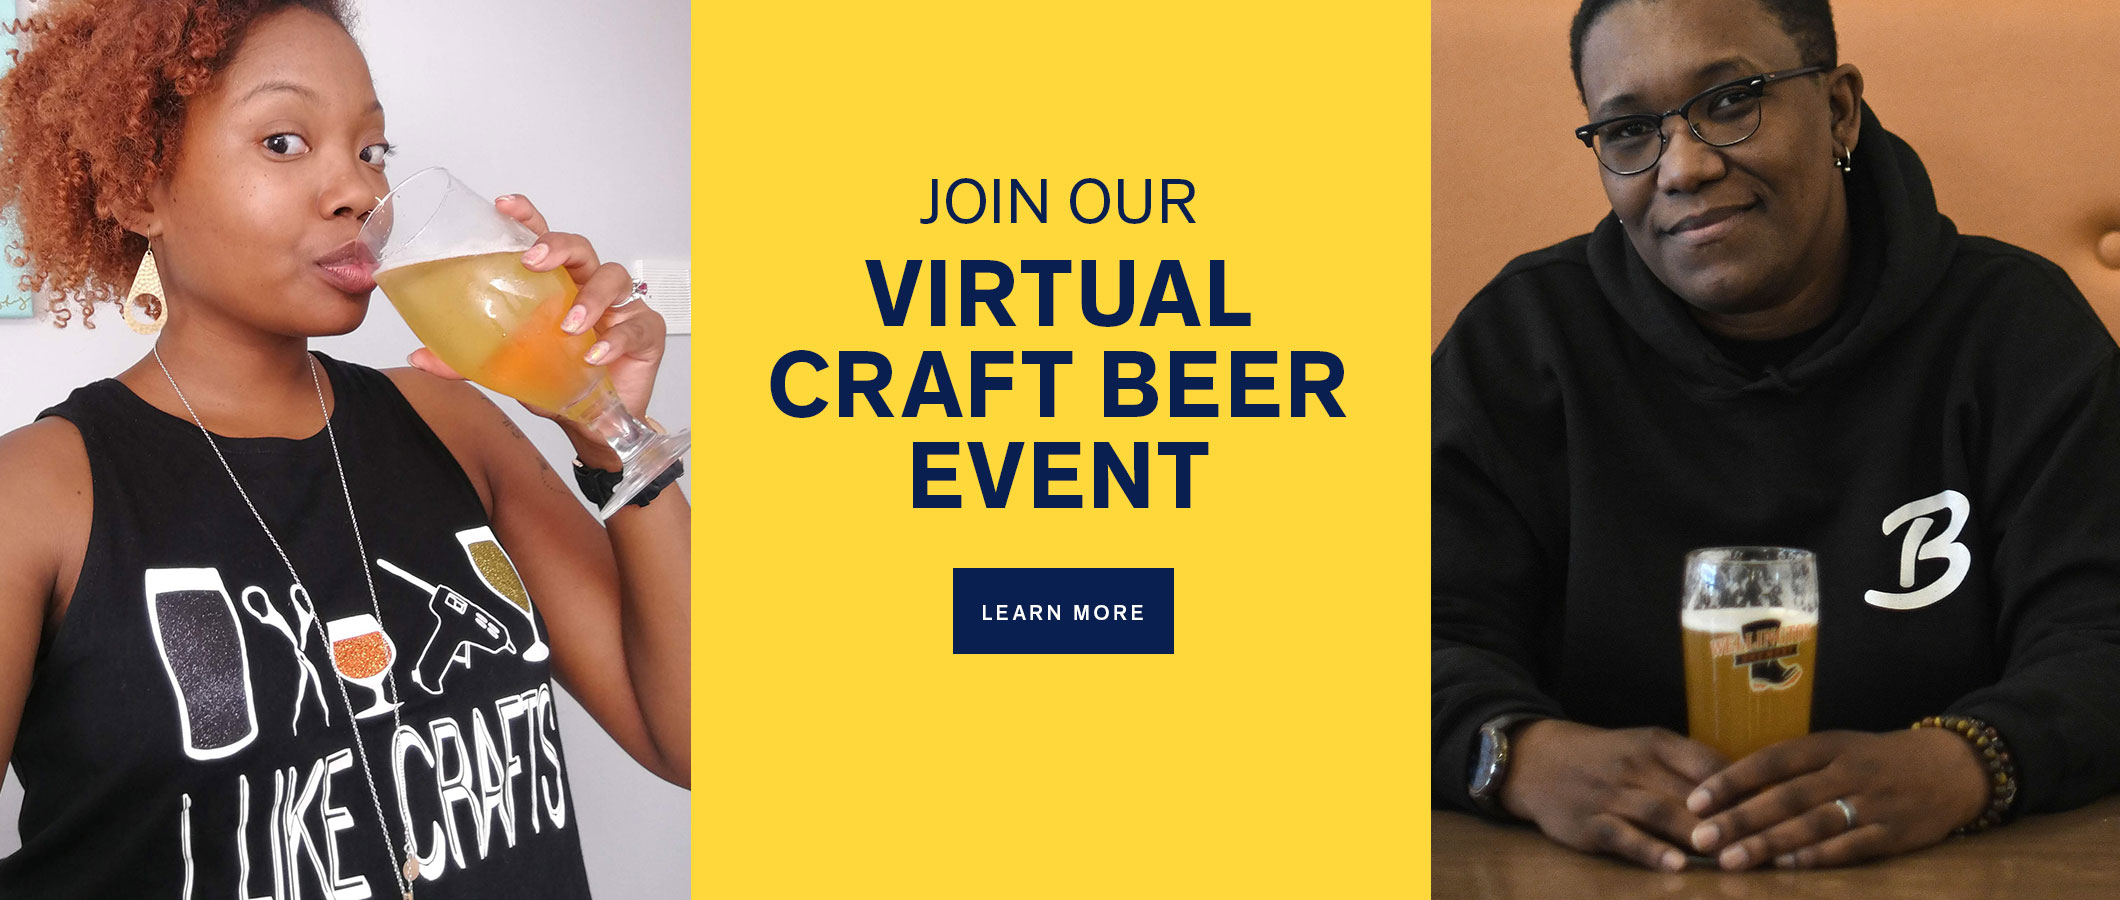 Join Our Virtual Craft Beer Event  LEARN MORE